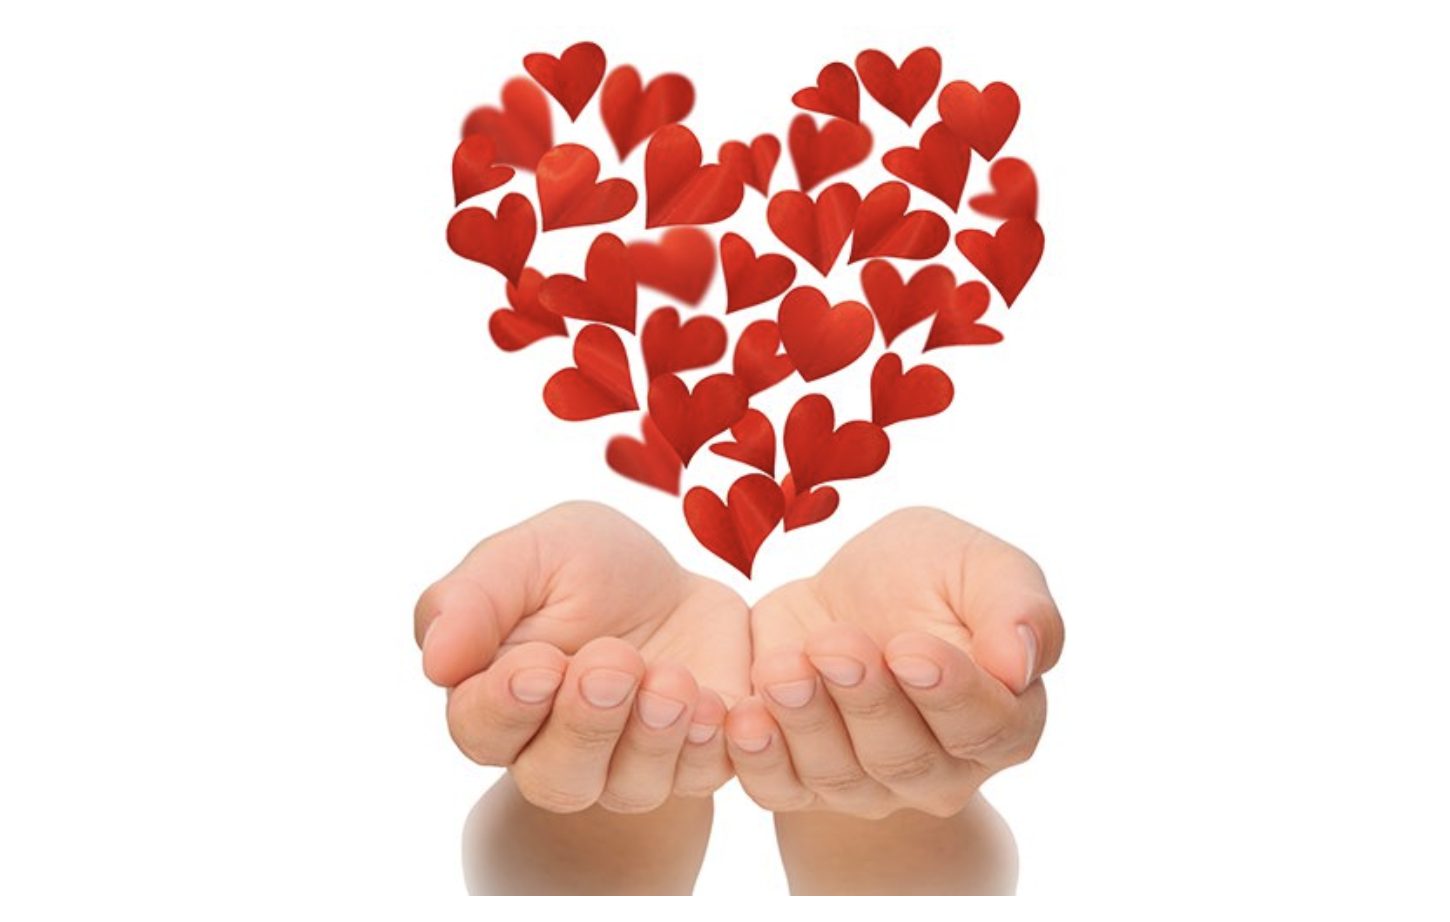 Flowers in heart shape hovering over hands